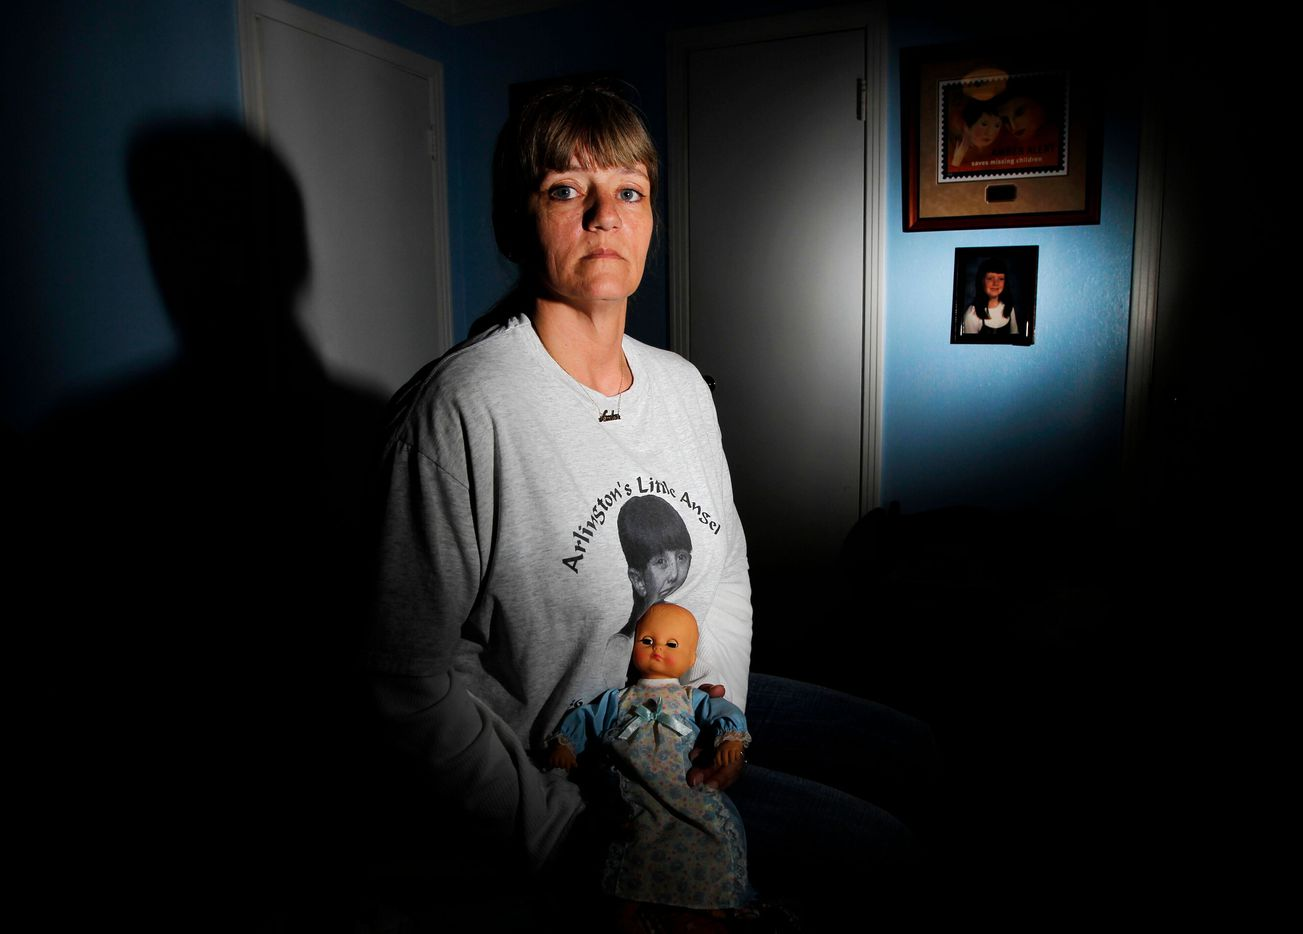 Near the 15 year anniversary of her daughter Amber Hagerman being abduction and killed, Donna Norris sits among Amber's belongings in her Hurst, Texas, home on January 10, 2011.